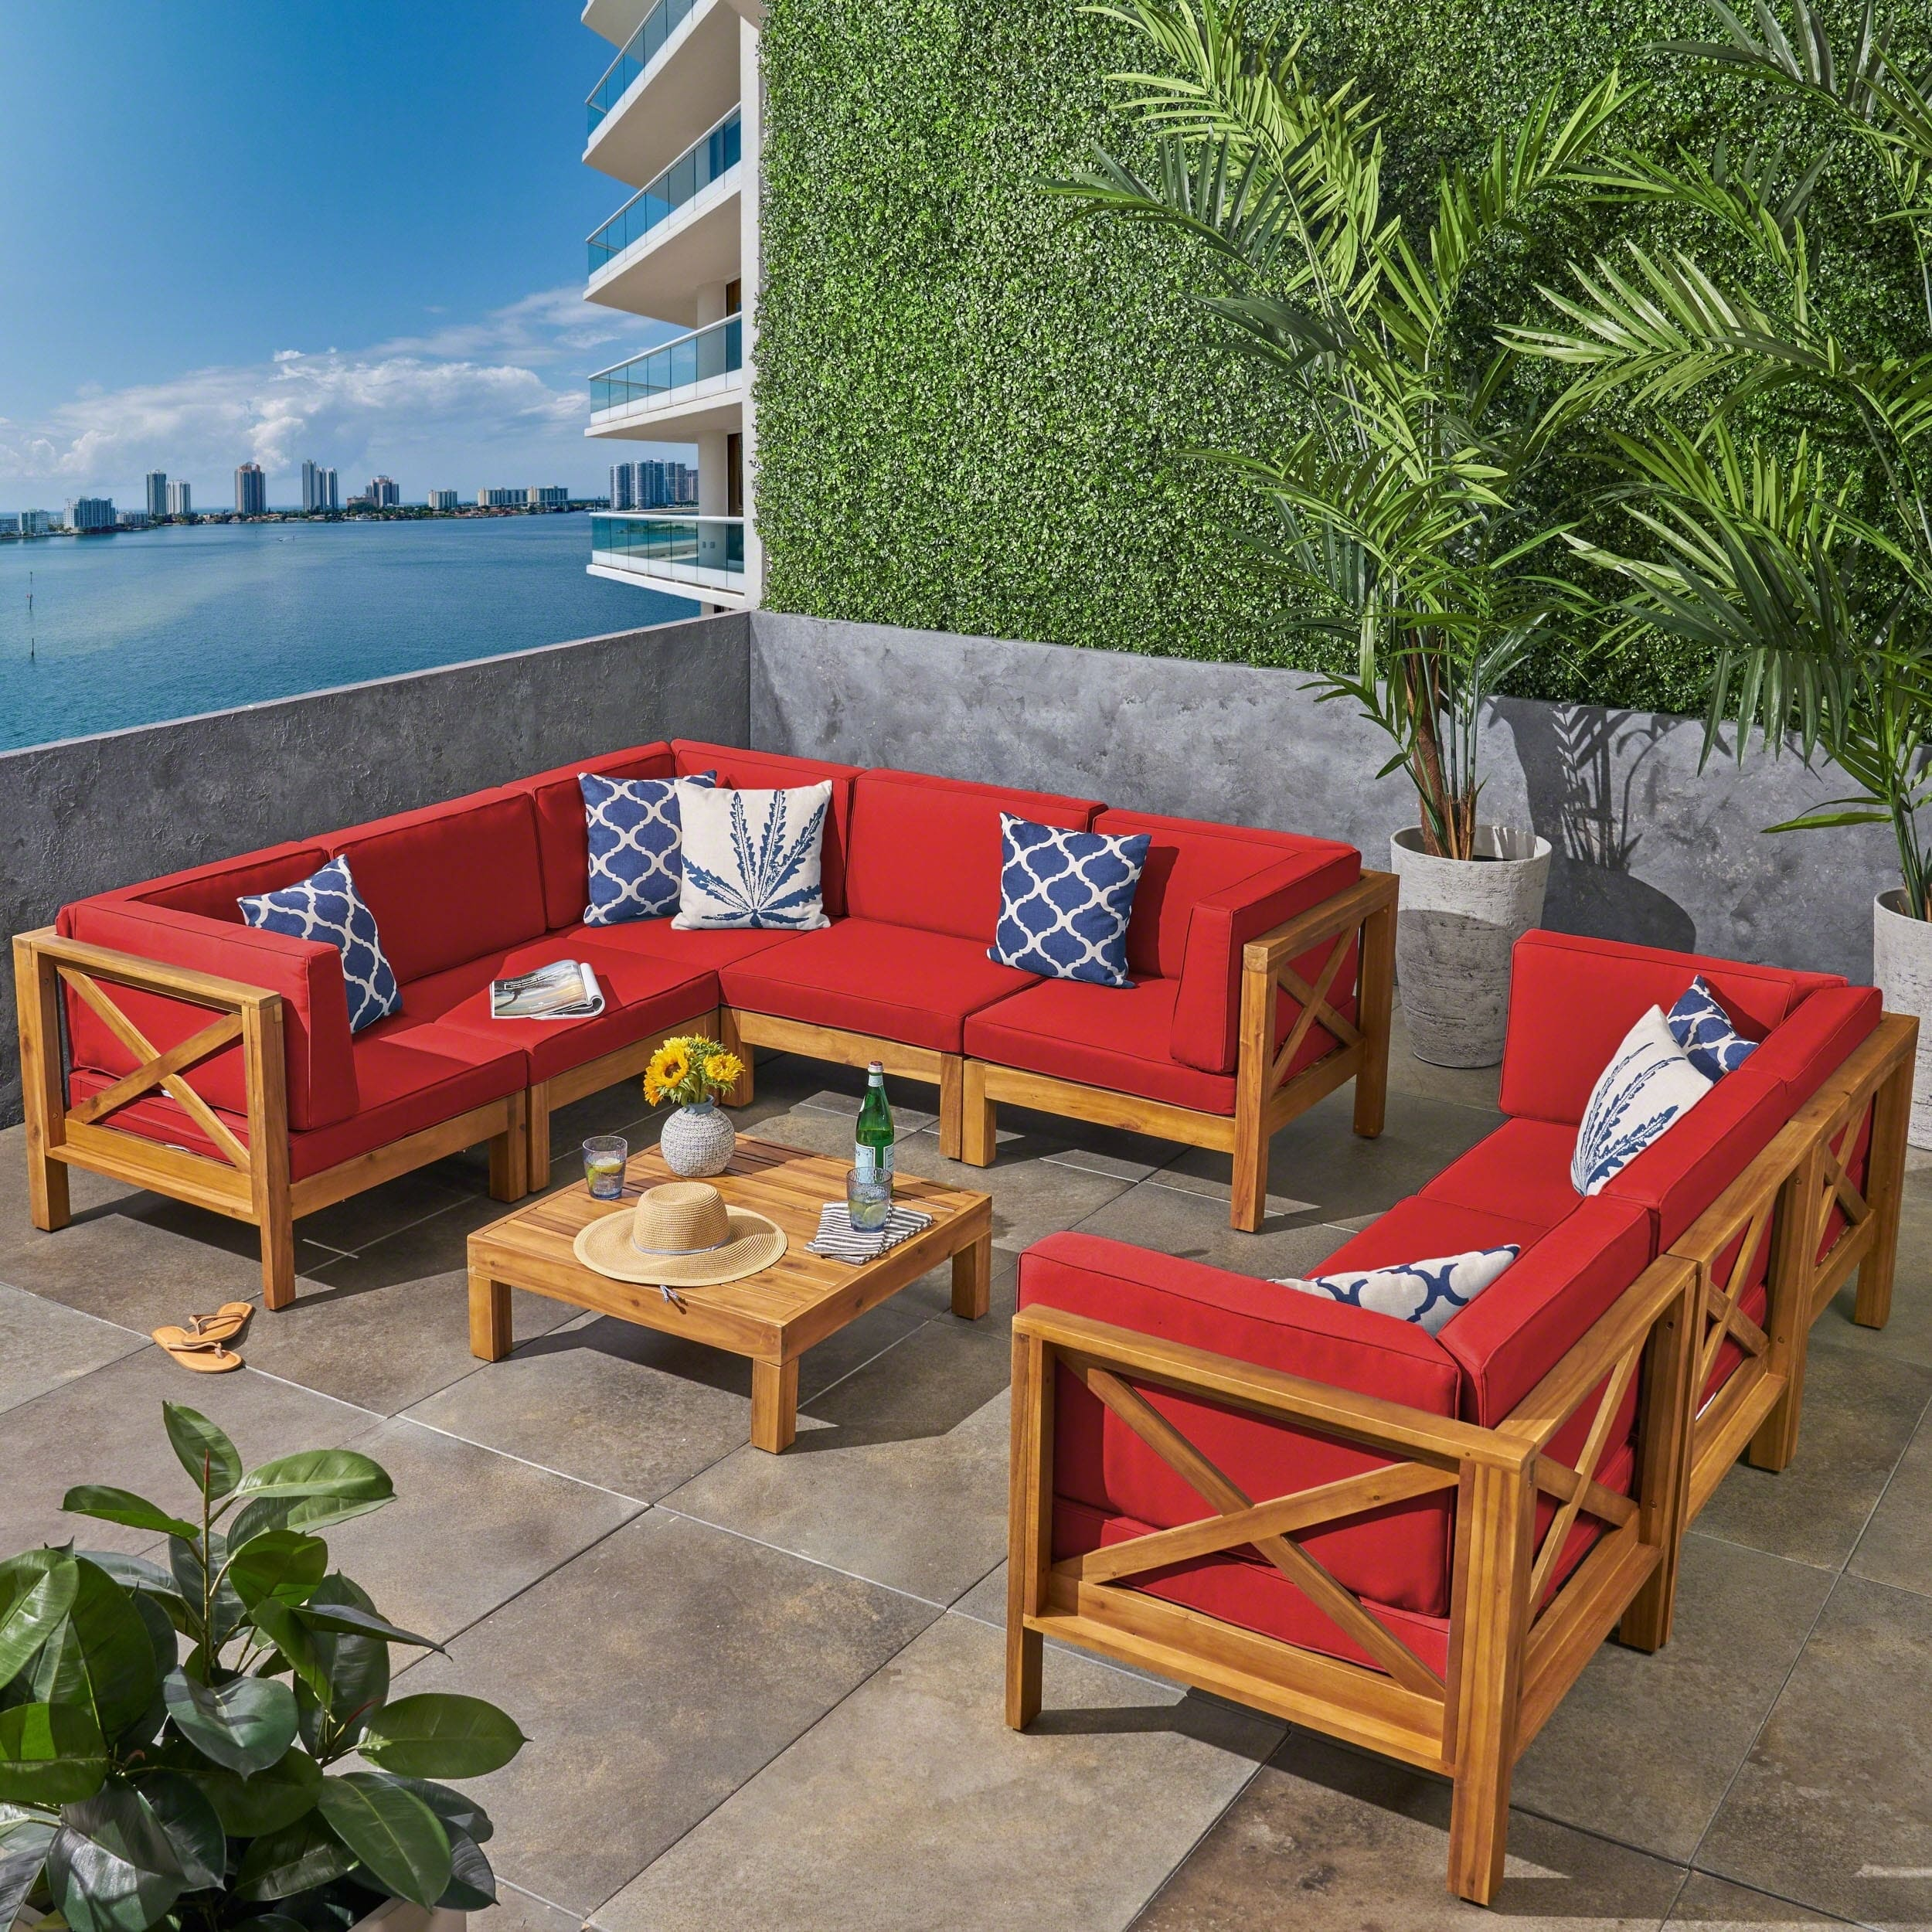 Christopher Knight Home Brava Outdoor 9-Piece Acacia Wood Sectional Sofa Set with Coffee Table by